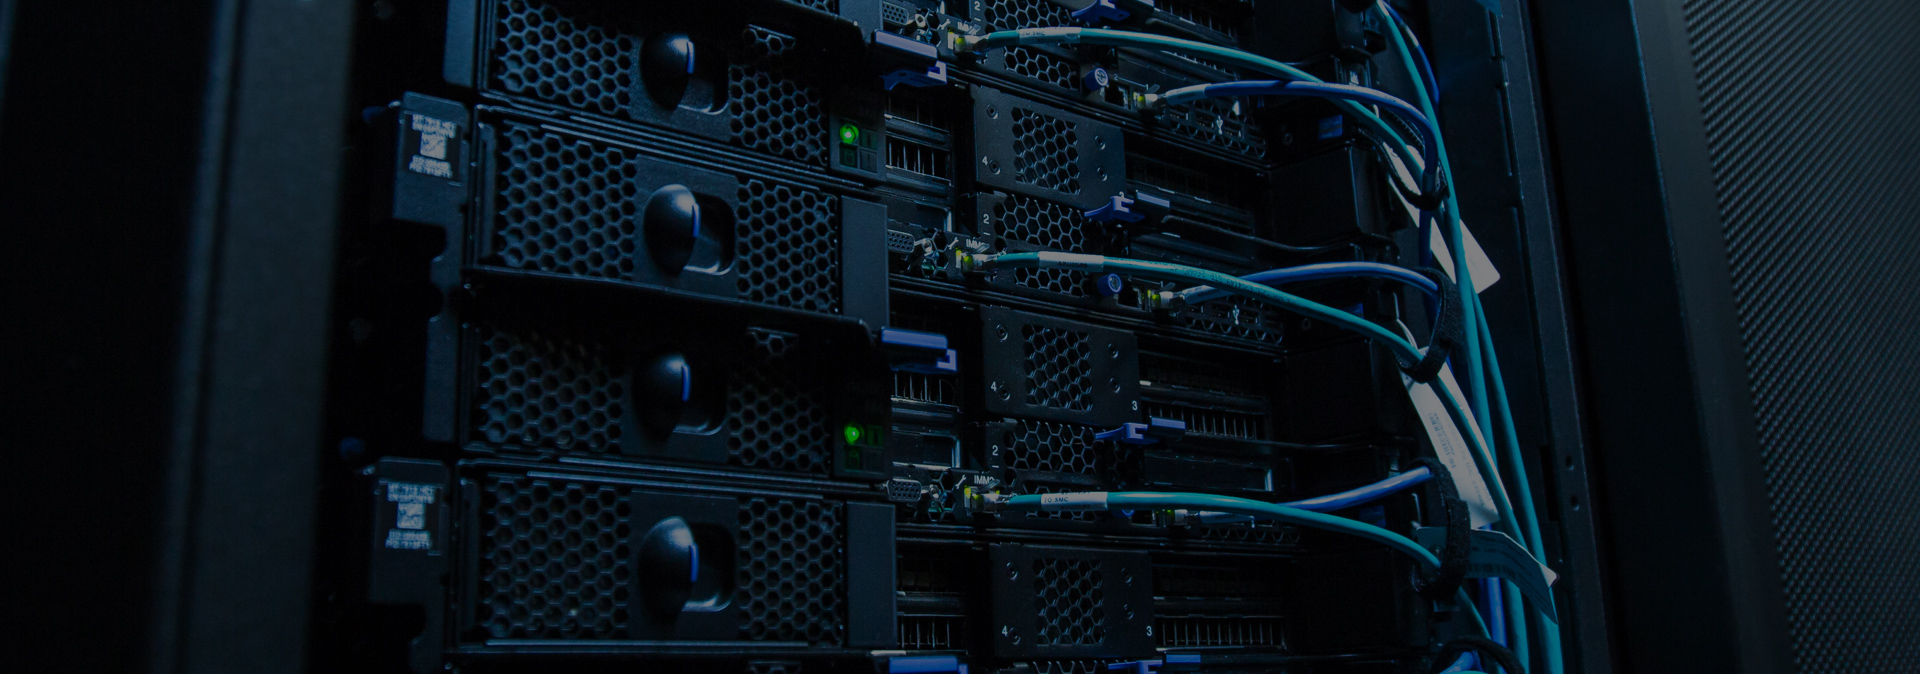 Racks and cabling in a data centre